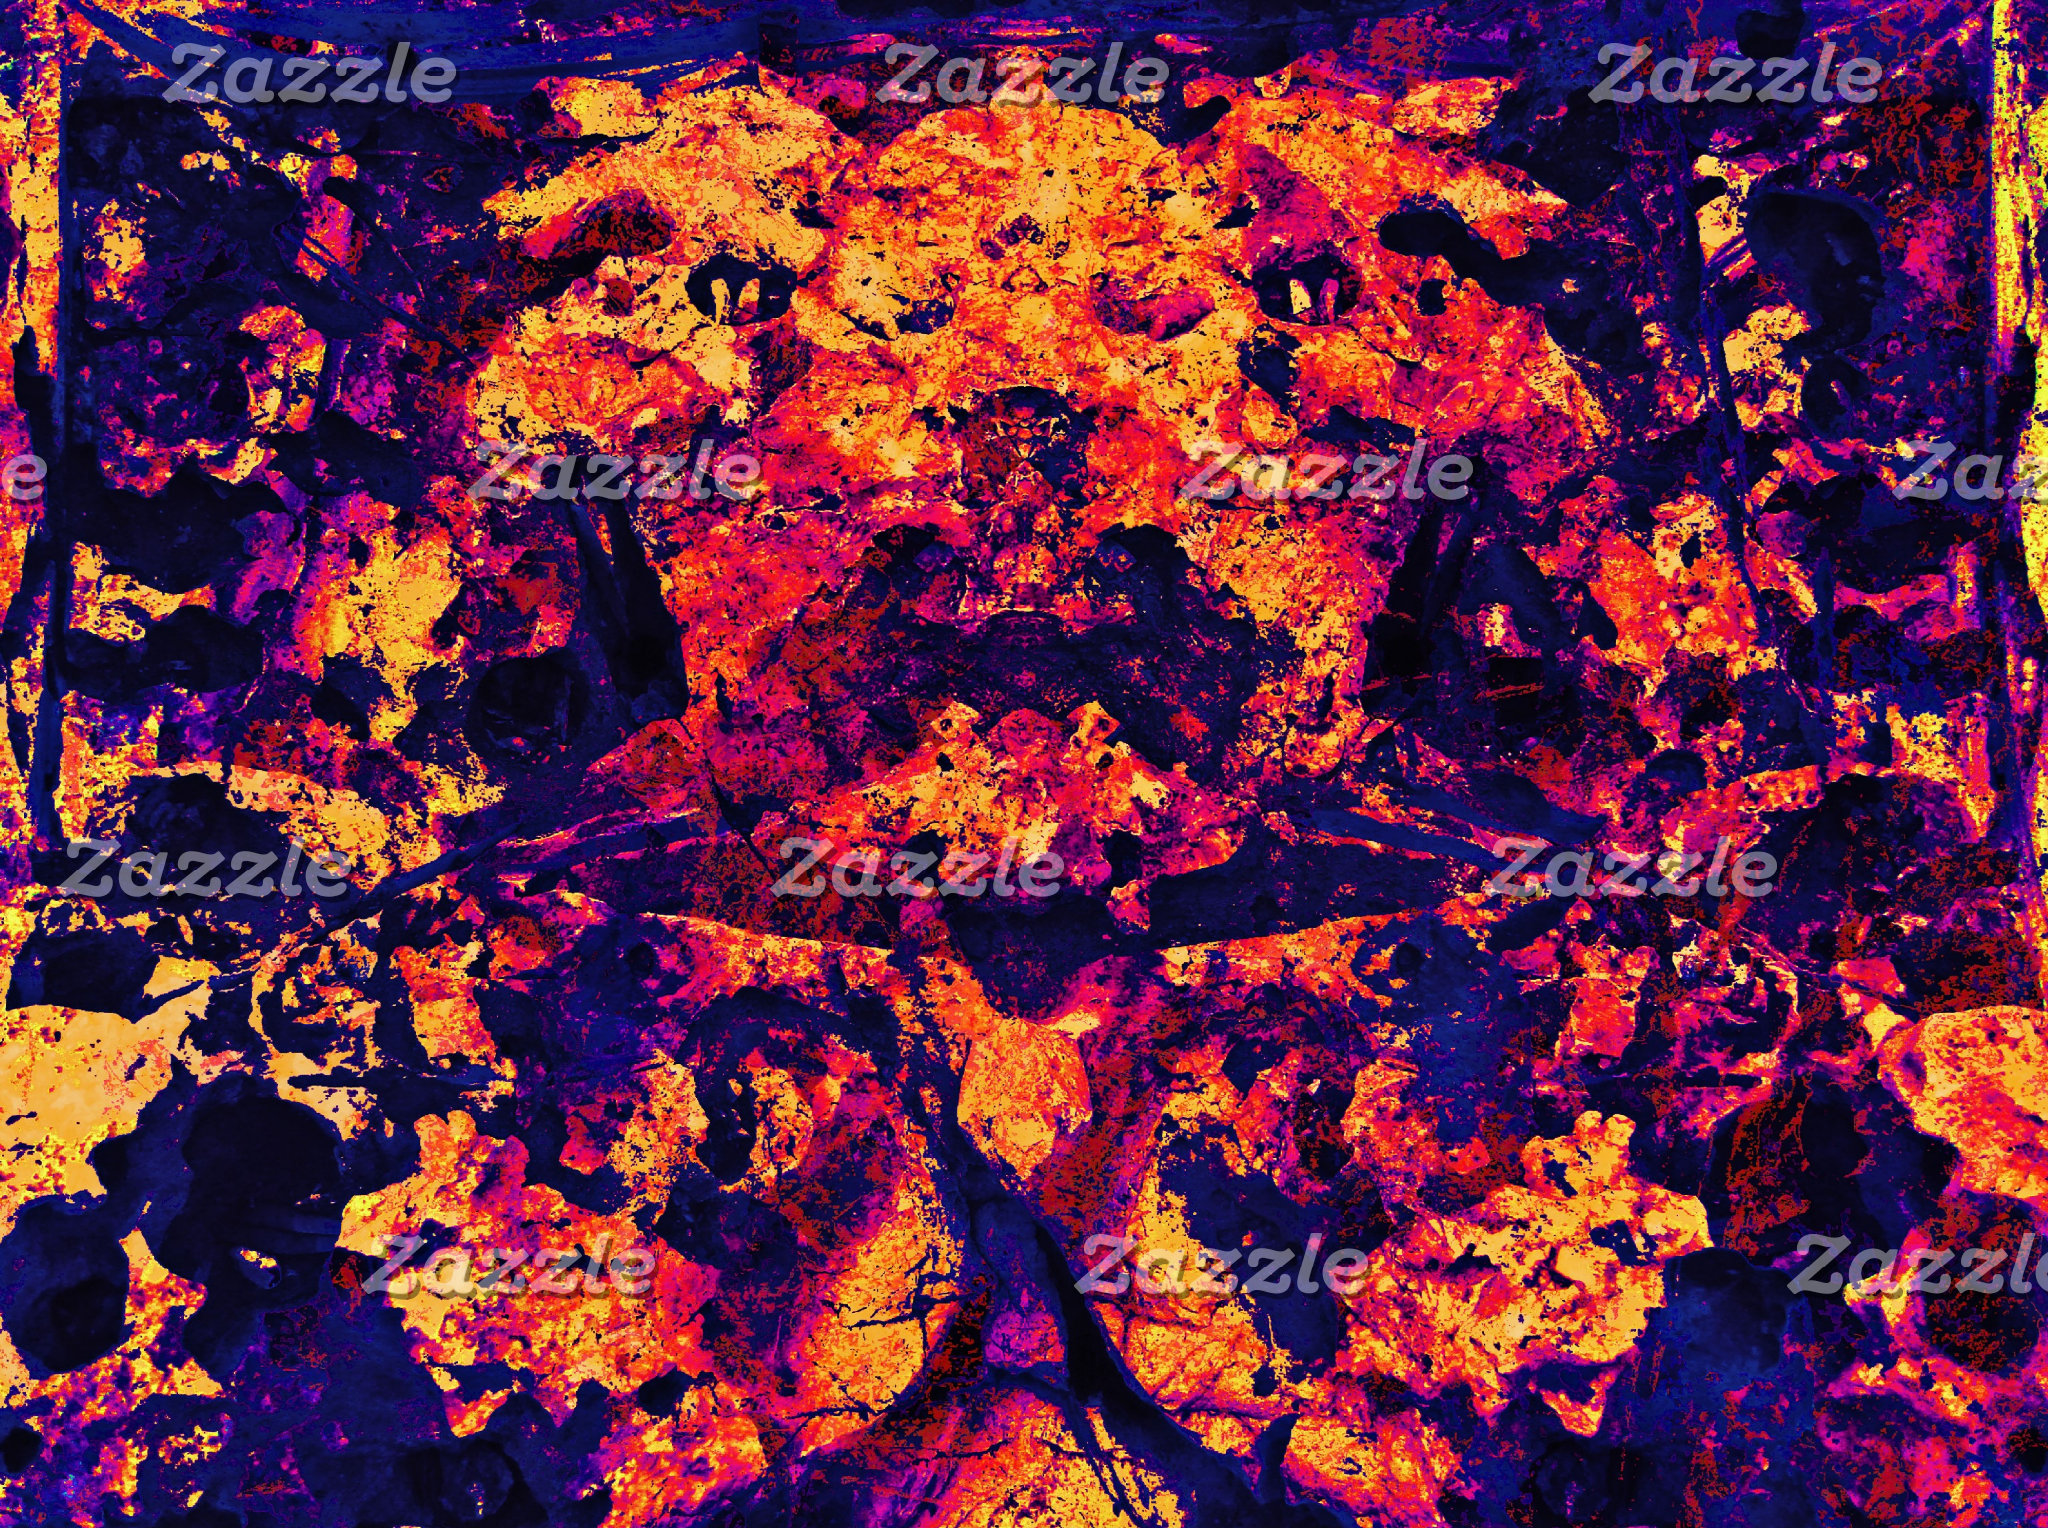 Digital Art / Abstracts